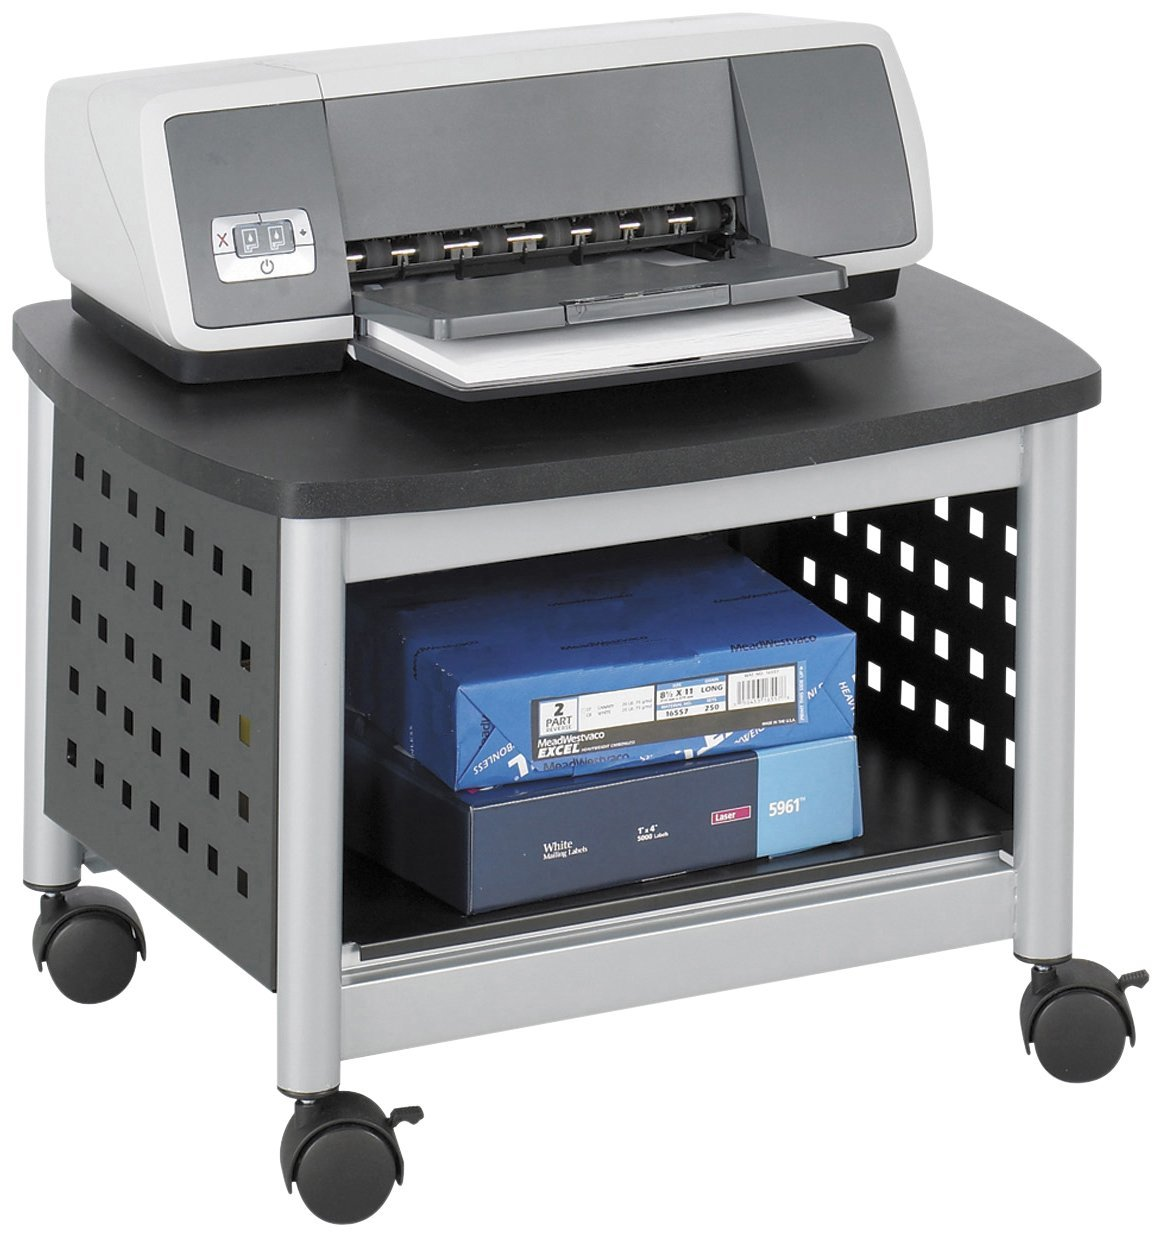 Maximize The Use Of Your Office Space With Printer Stand